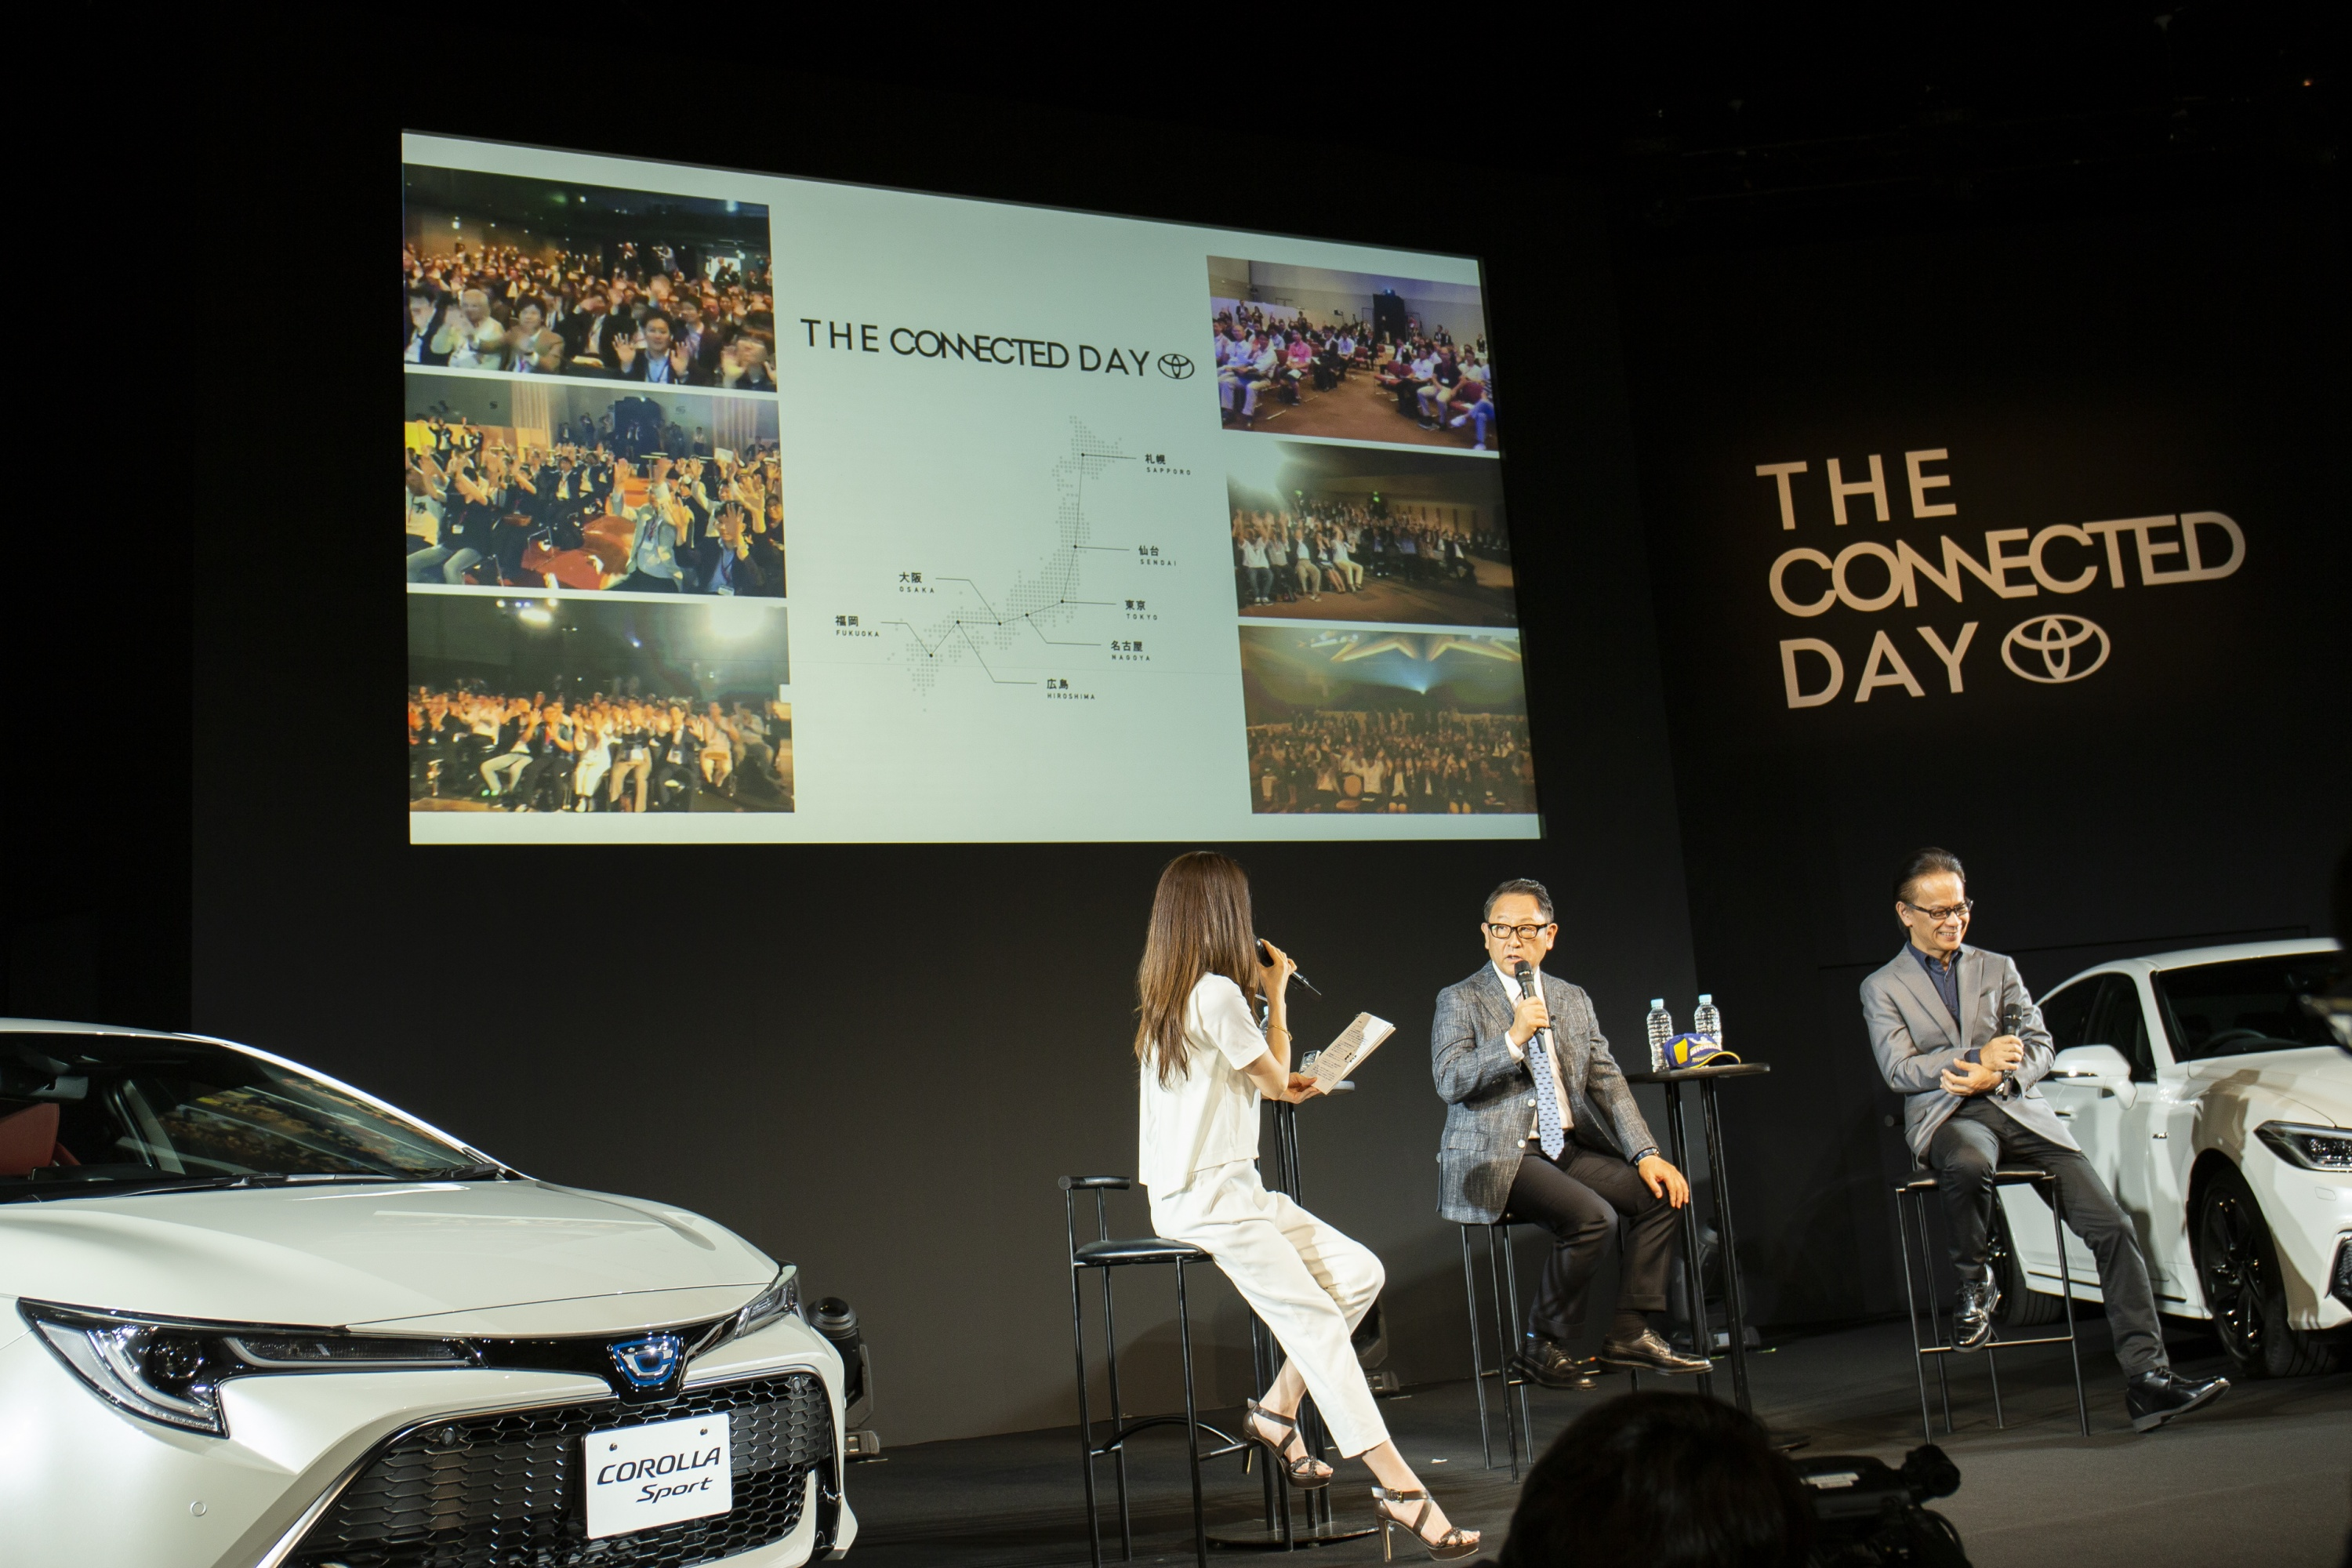 TheConnectedDay_07.jpg